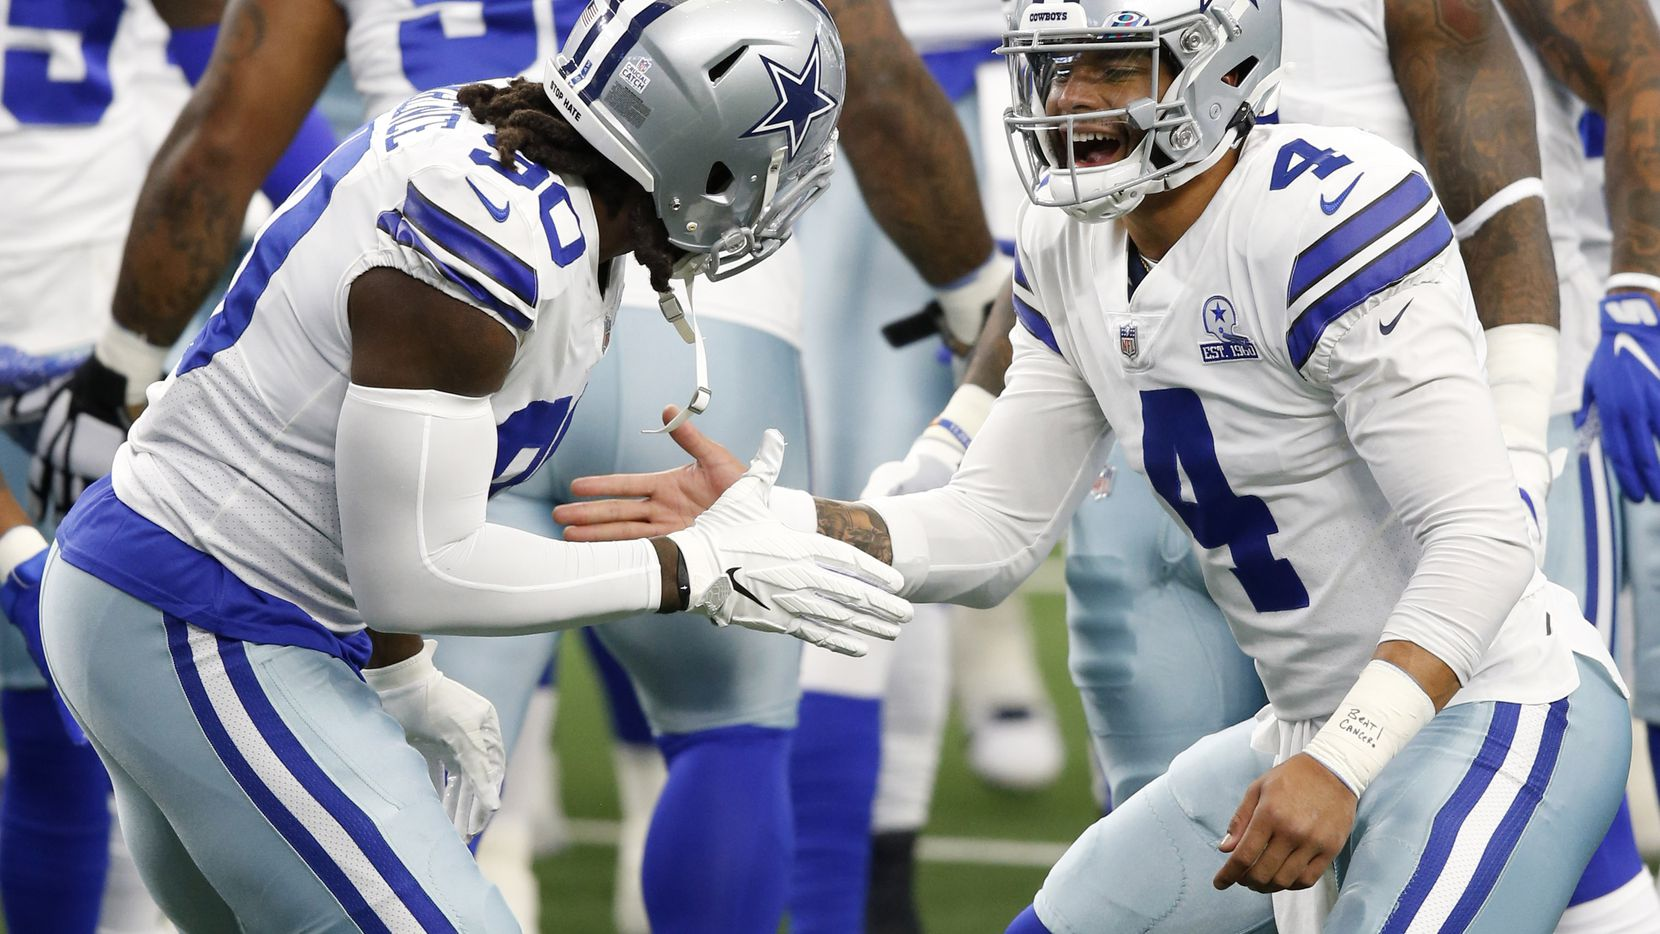 Cowboys quarterback Dak Prescott (4) greets defensive end DeMarcus Lawrence (90) during warmups before a game against the Browns on Sunday, Oct. 4, 2020, at AT&T Stadium in Arlington.